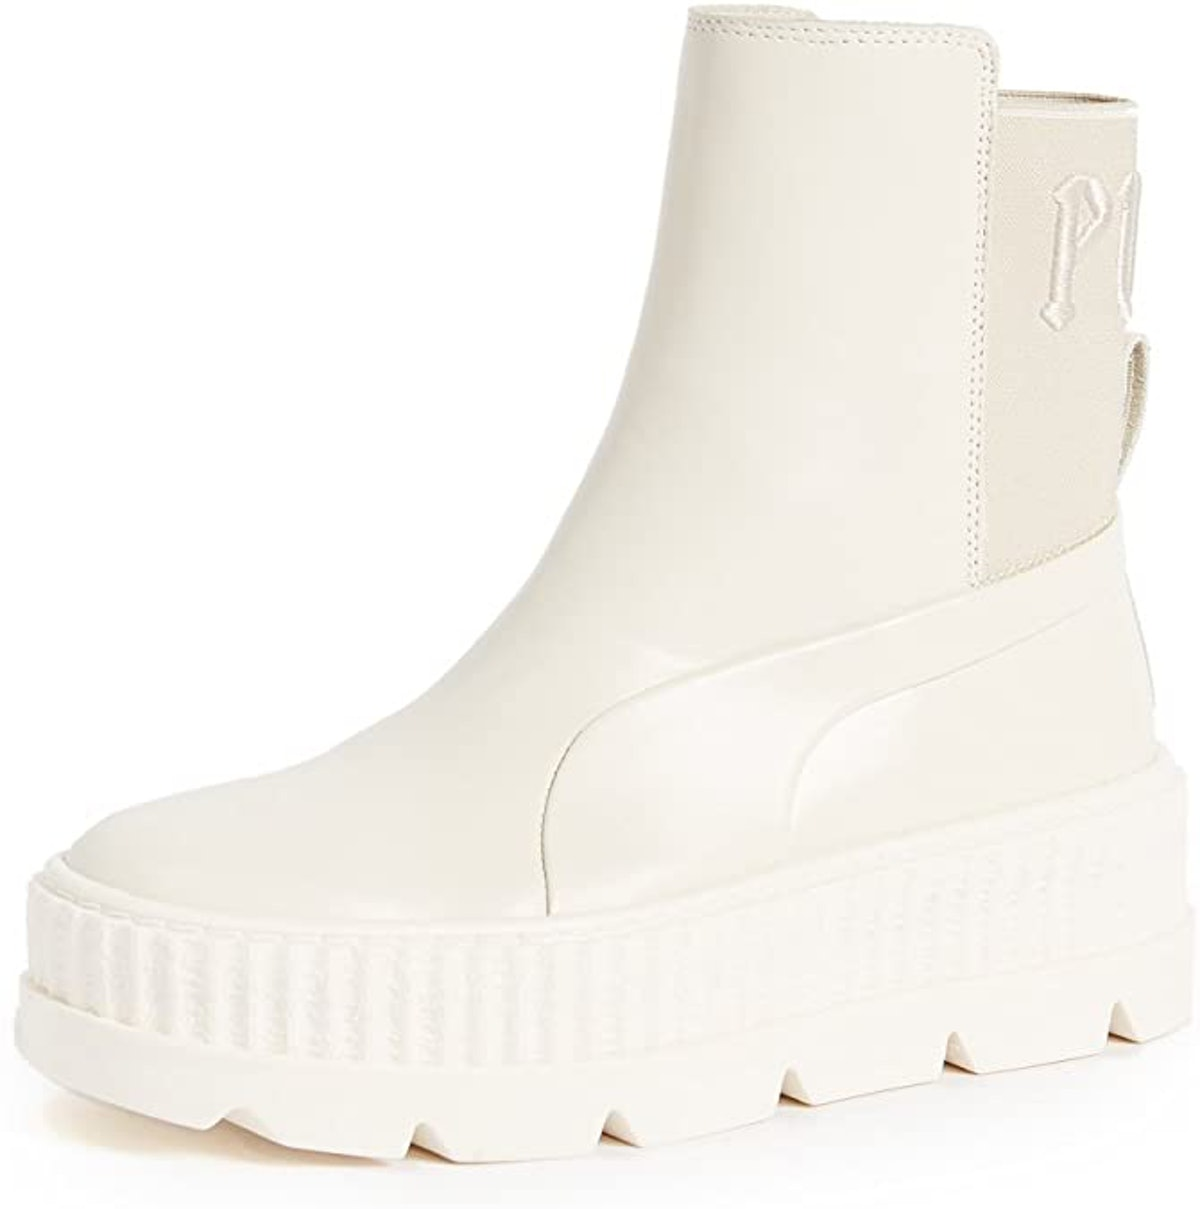 Chelsea sneaker boots from PUMA x Fenty, available to shop on Amazon.